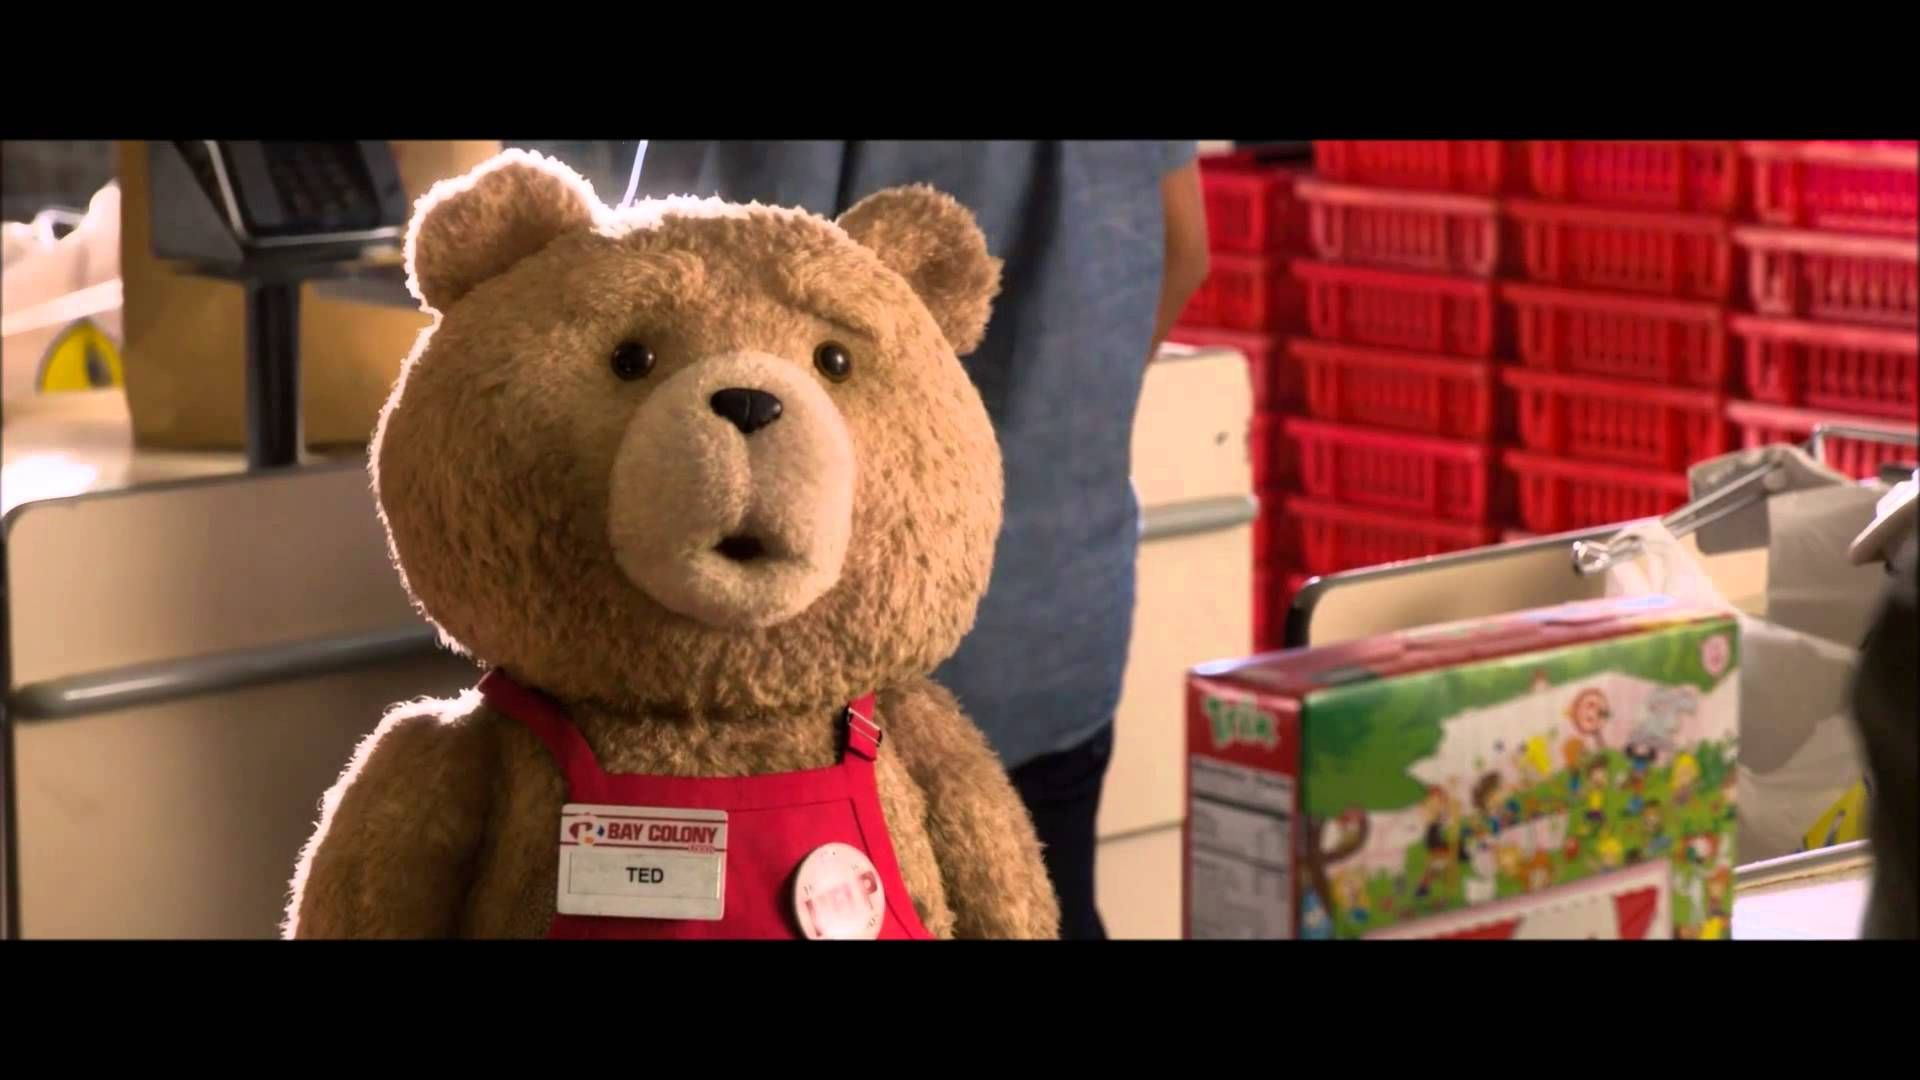 48419773 Ted 2 - Best Scene in Movie - Liam Neeson Buying a Box of Trix Ted 2  raunchy movie I can't help but like. Ted 1 was better